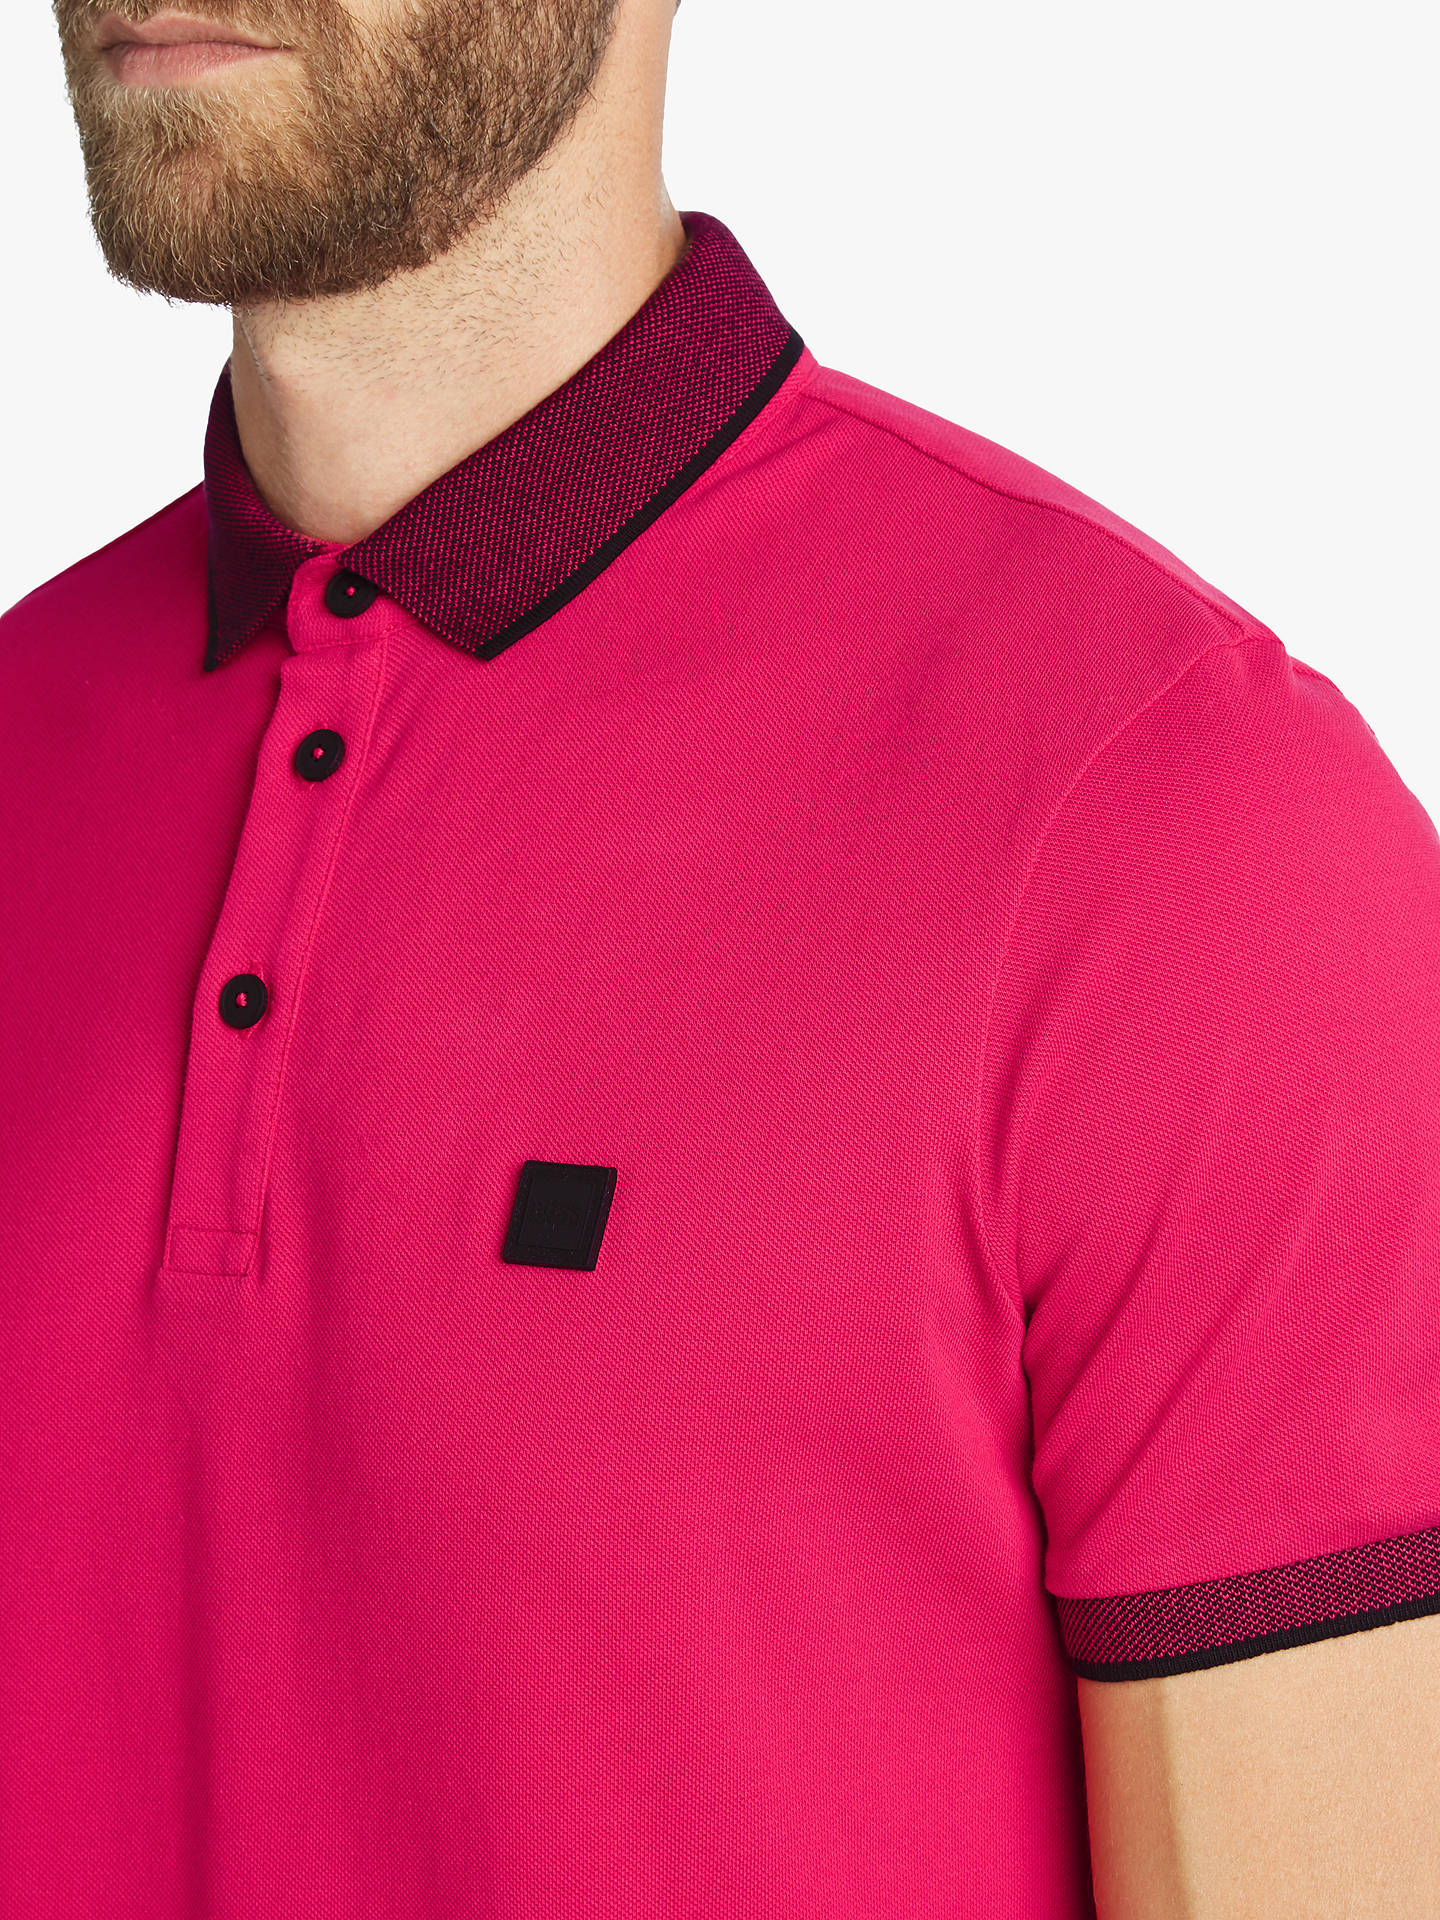 BuyBOSS Porch Short Sleeve Polo Shirt, Bright Red, S Online at johnlewis.com